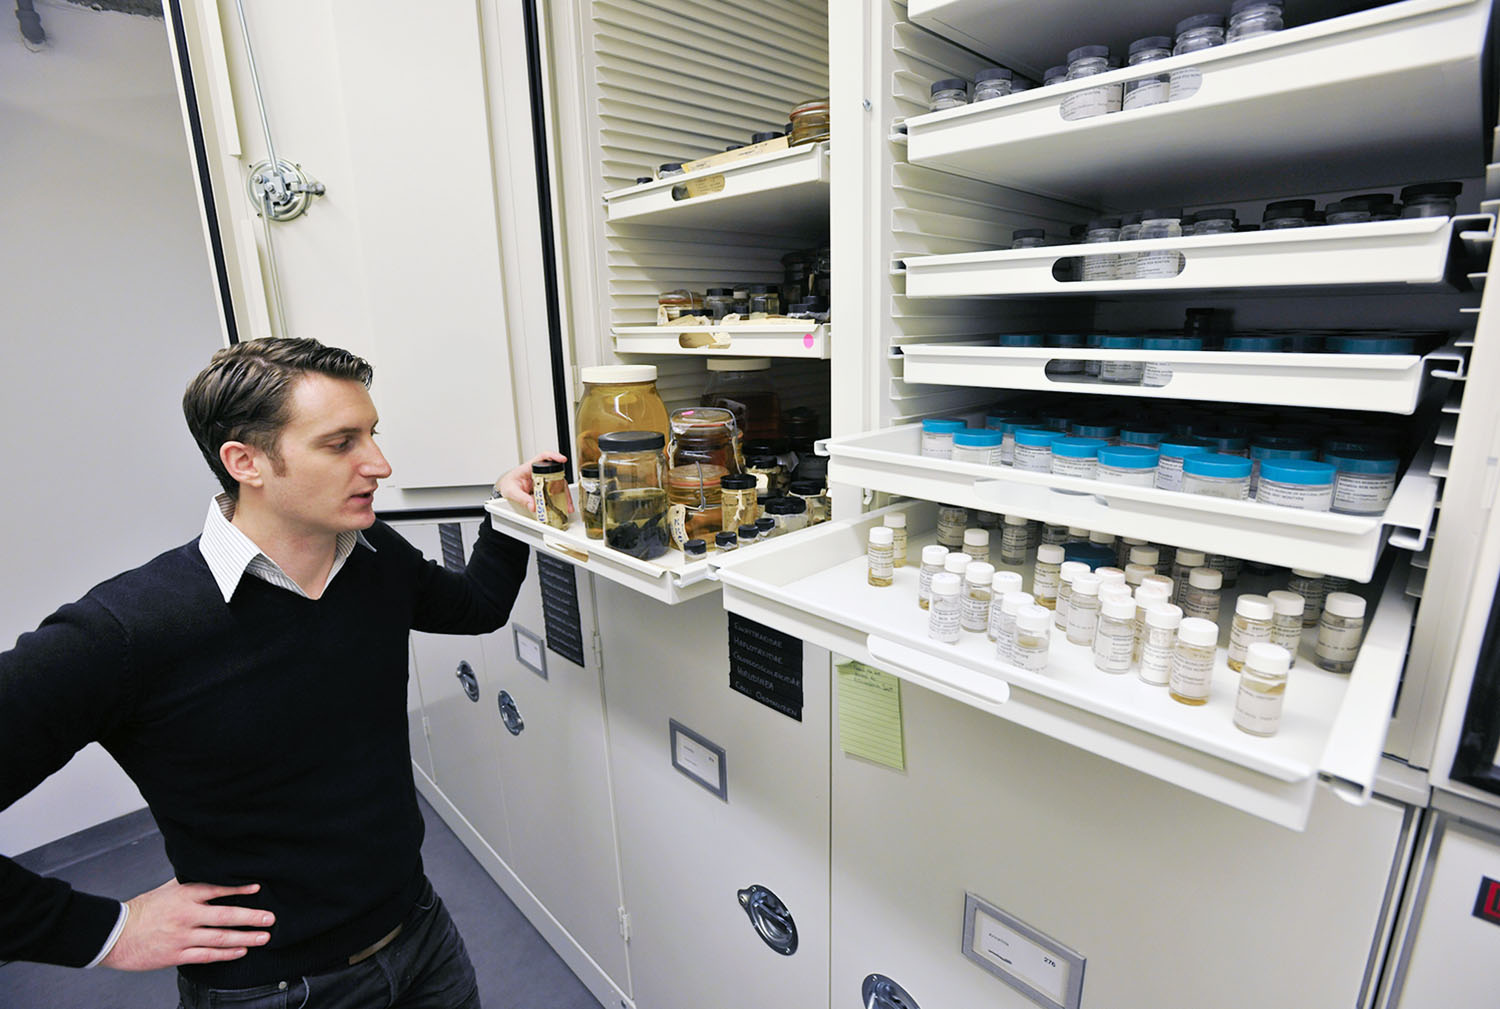 Student stands in front of metal cabinet filled with shelves and pulls out one, inspecting the variously-shaped bottles containing specimens.